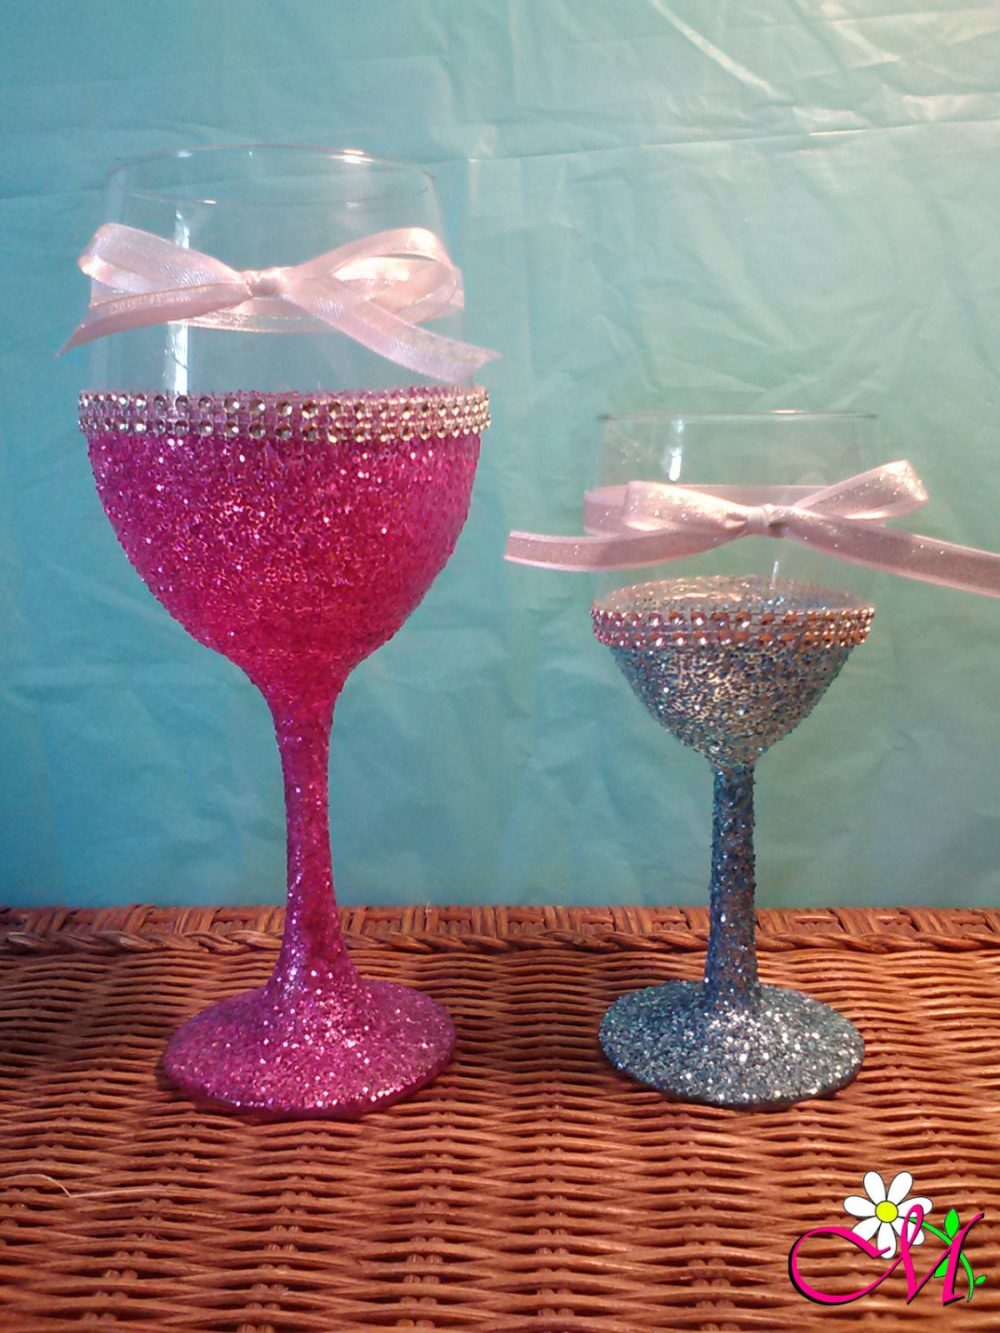 Glitter Wine Glasses, Bridal Shower Favors, Wedding Bridesmaid Gift,   8.5Oz, 12Oz, Or 20Oz   Glass   Your Choice Of Color